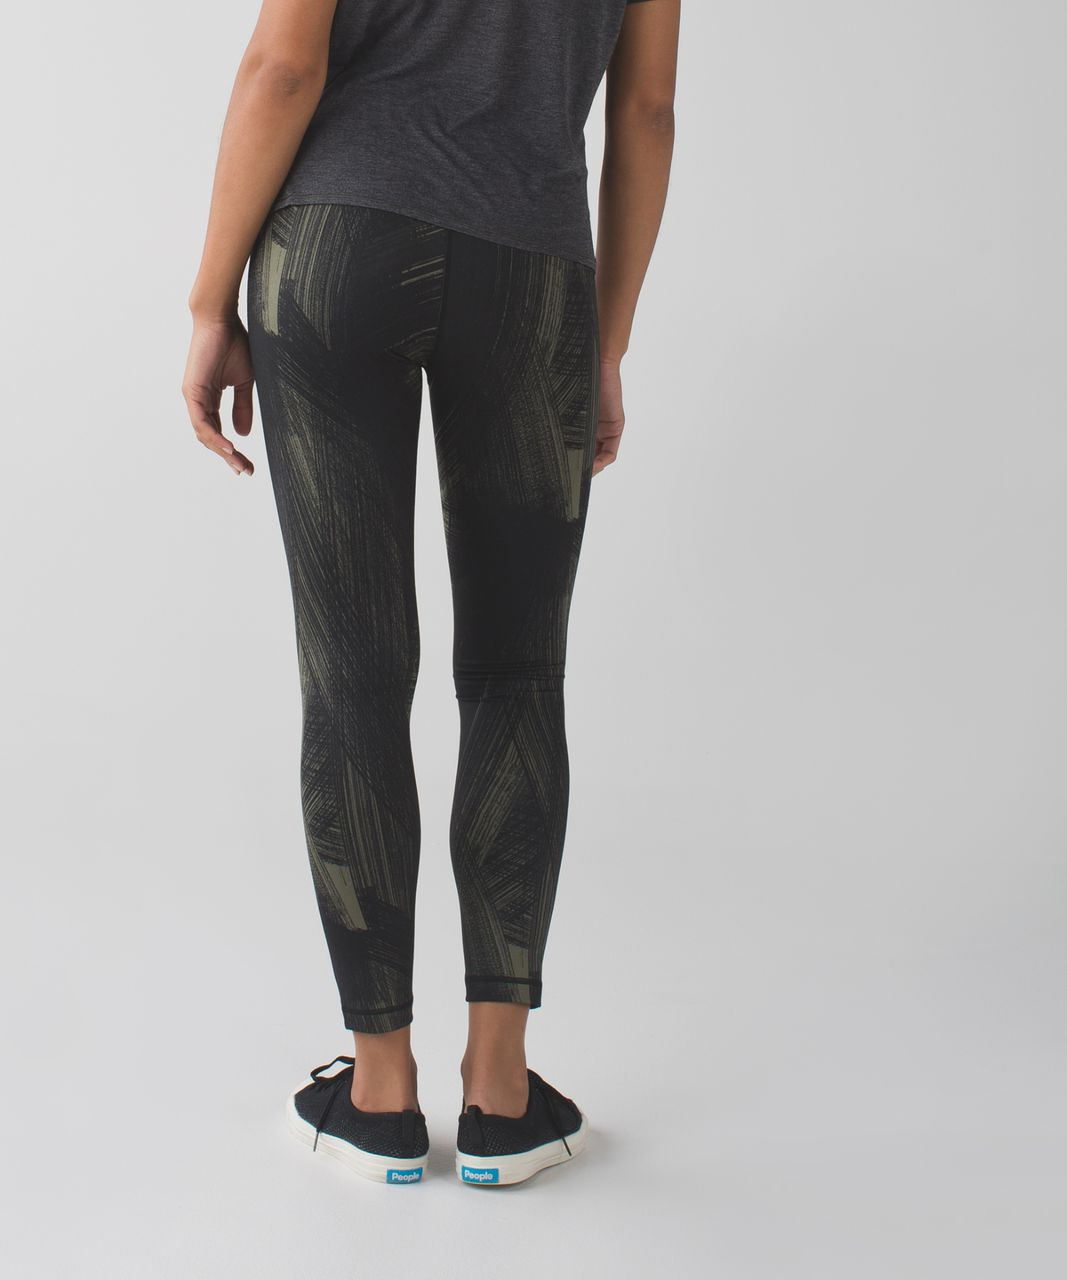 Lululemon High Times Pant *Full-On Luon - Wind Chill Fatigue Green Black